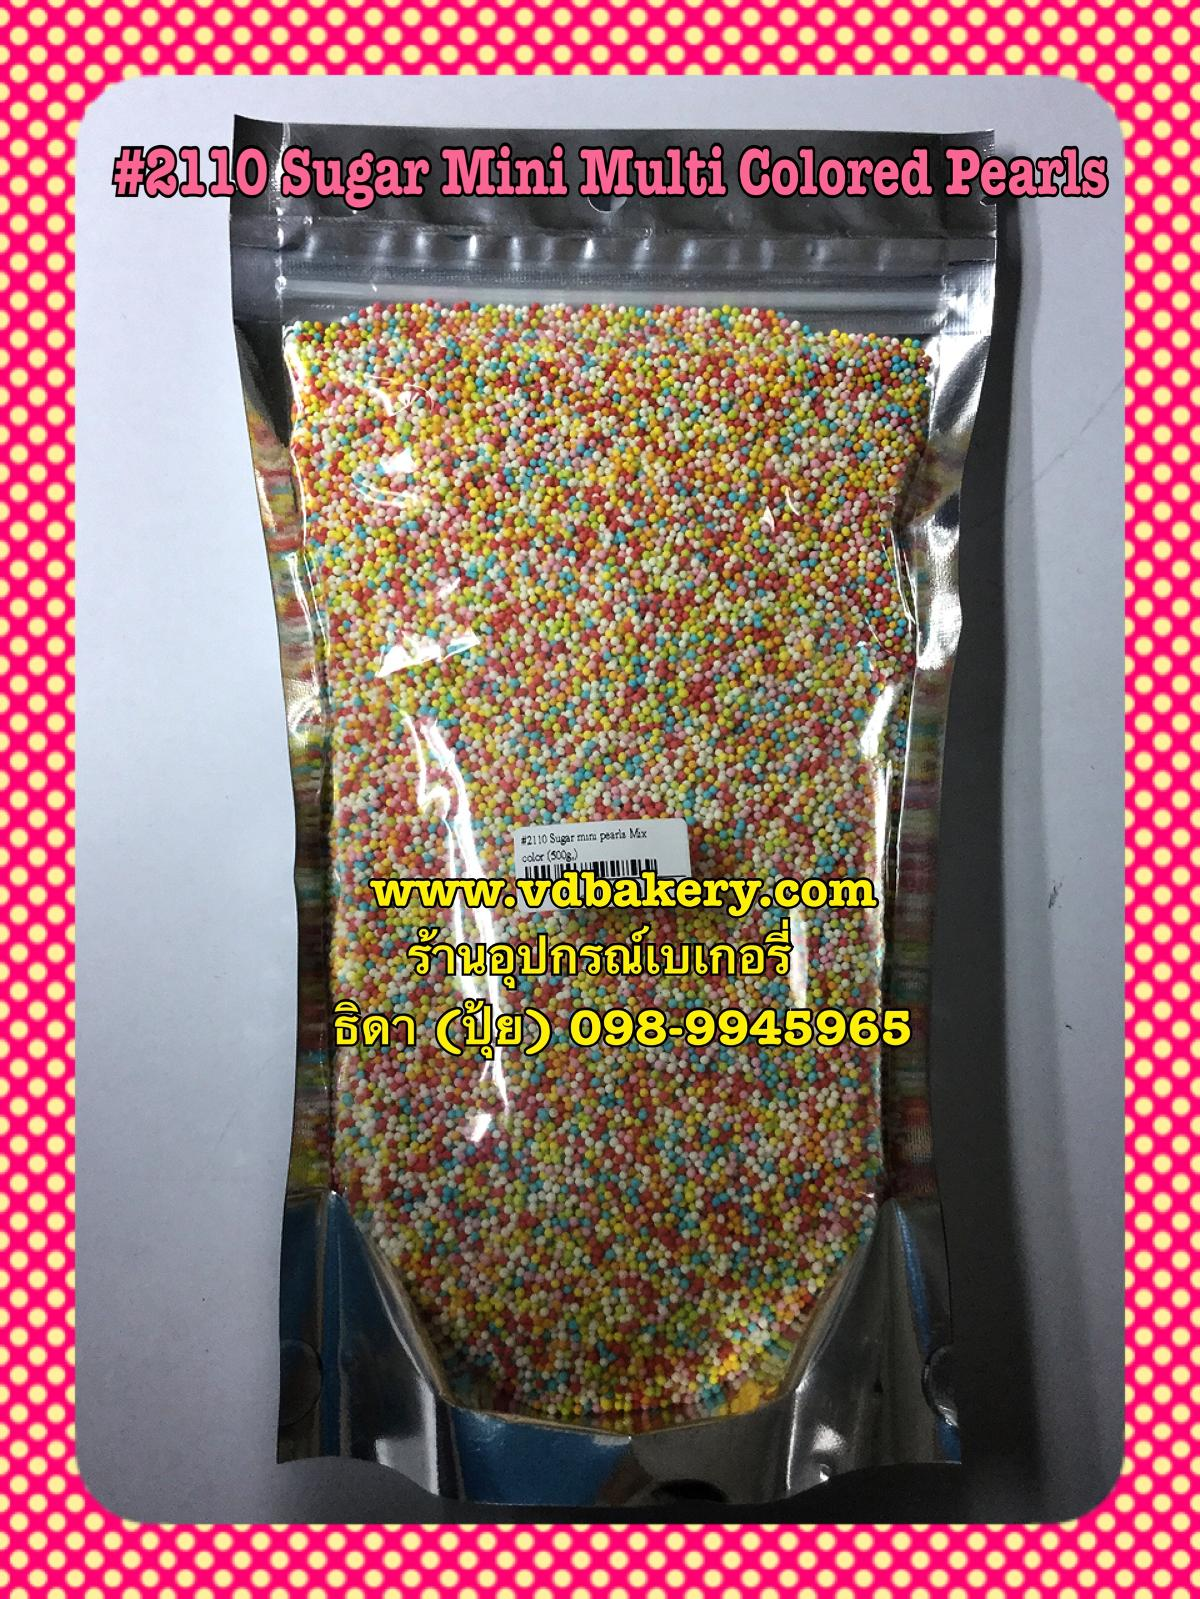 (5812110) #2110 Sugar mini Multi Colored pearls (500 g.)